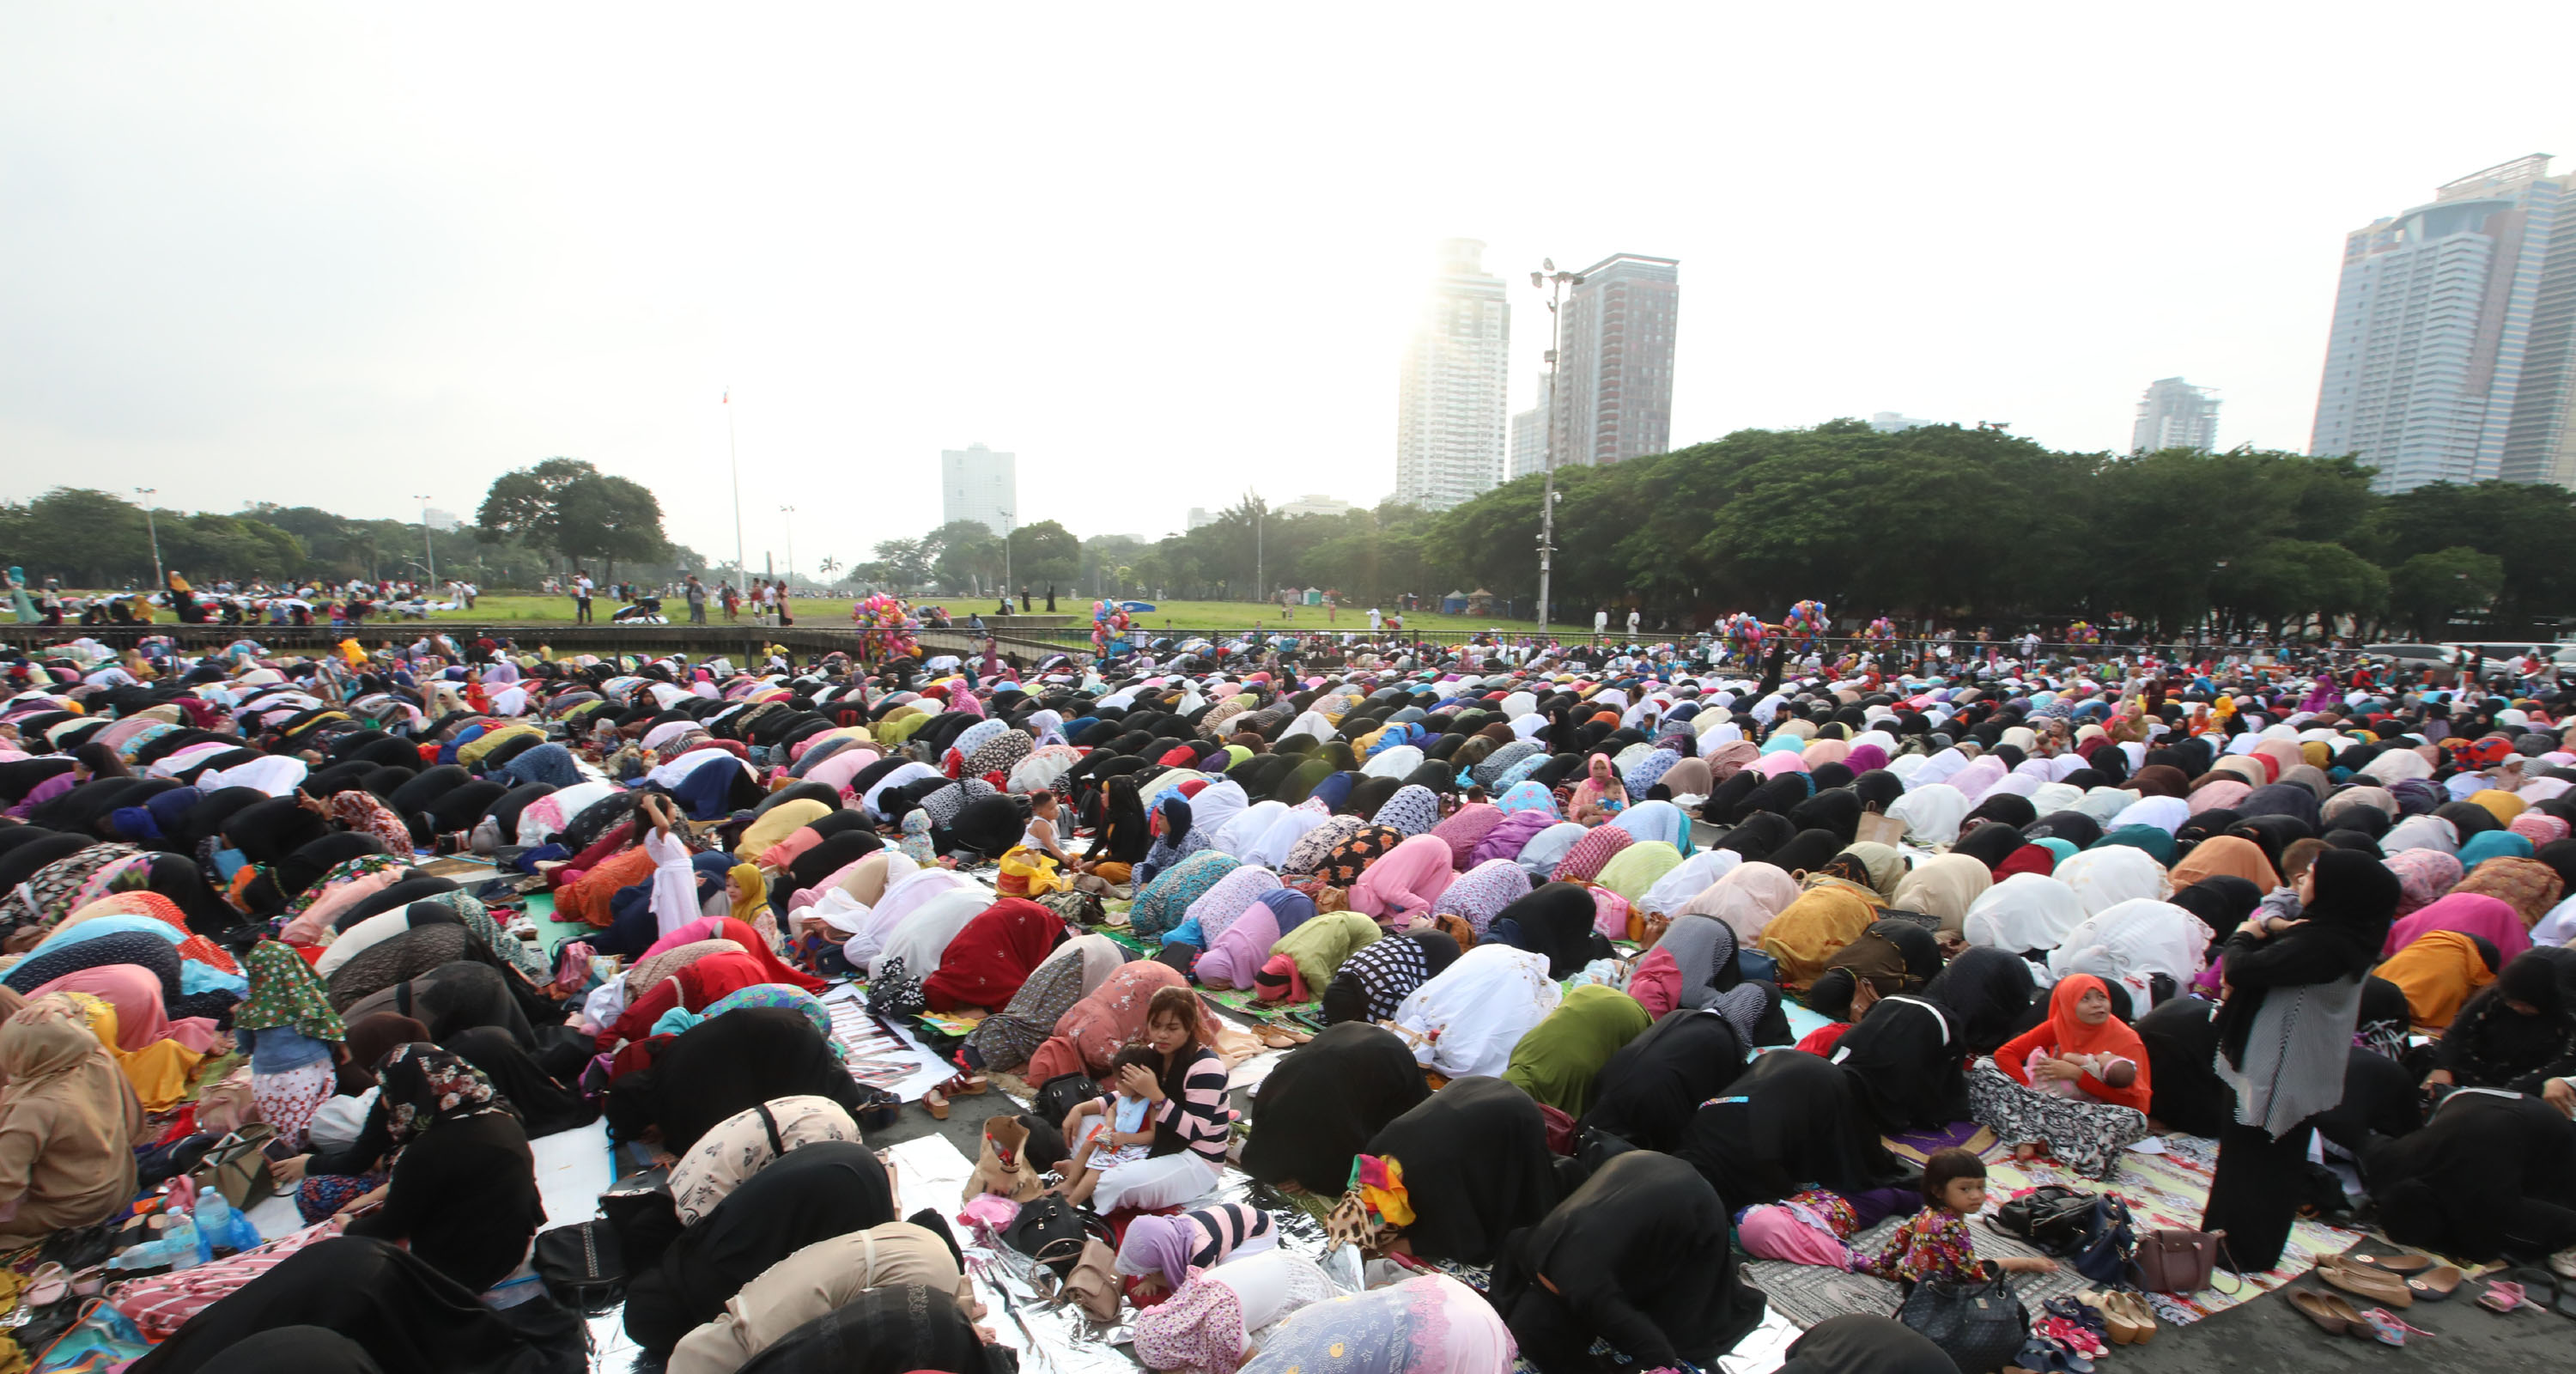 Photo credit: PNA photo by Avito C. Dalan. EID AL-ADHA. Muslims celebrate Eid al-Adha or the Feast of Sacrifice at the Quirino Grandstand in Manila on Tuesday (August 21, 2018). It is the most important festival in the Islamic calendar as Muslims gather to feast on halal dishes, exchange gifts and mingle with family and friends.